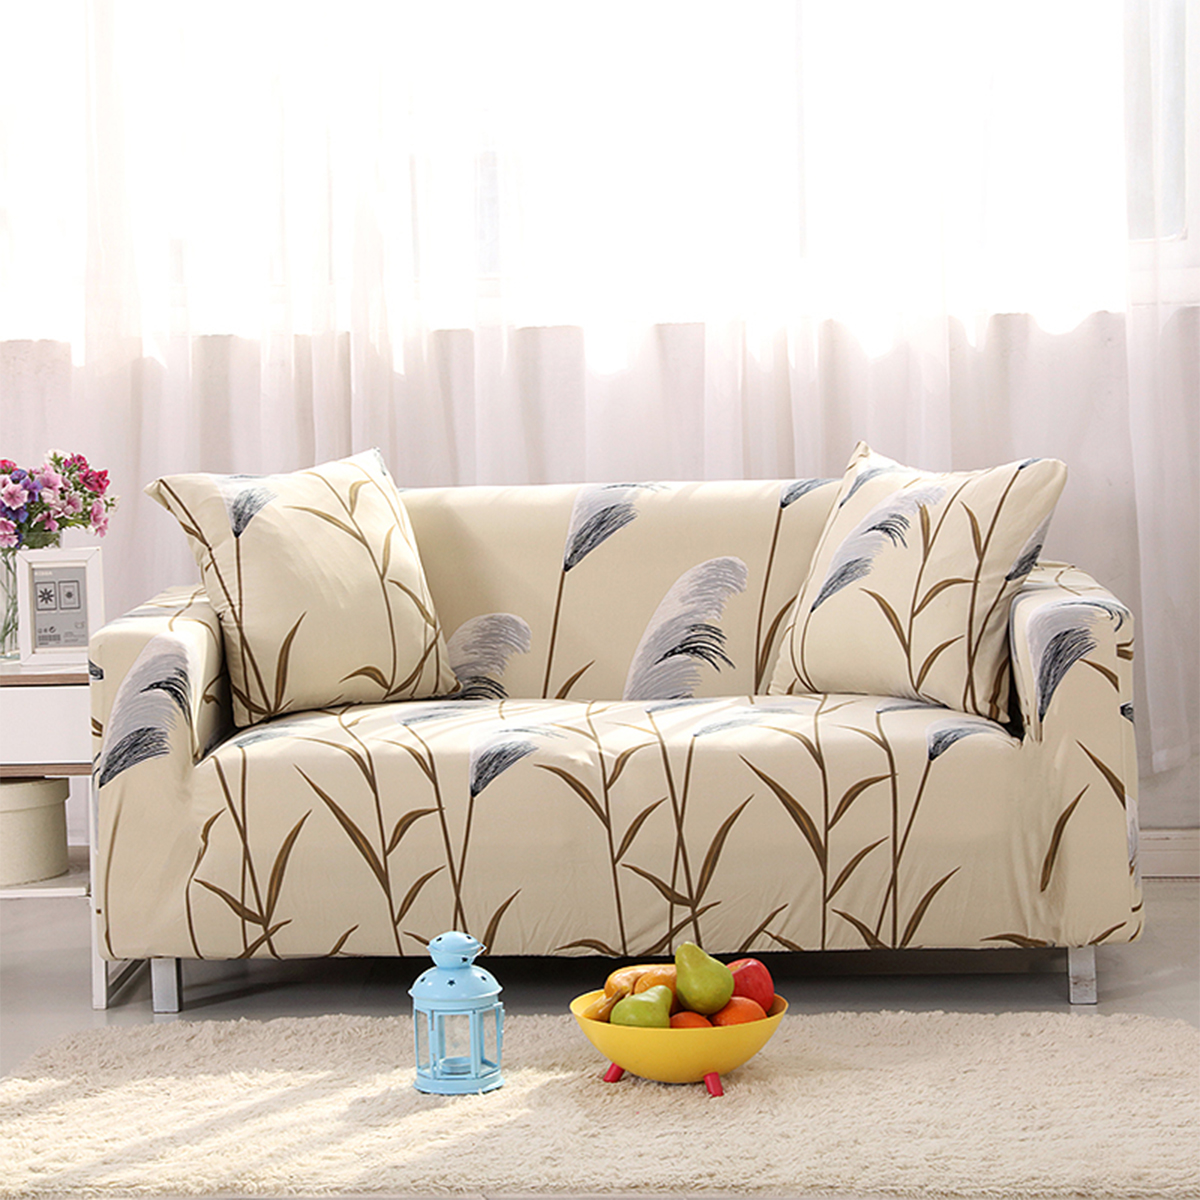 1/2/3/4 Seater Sofa Slipcover Stretch Protector Soft Couch Loveseat ...